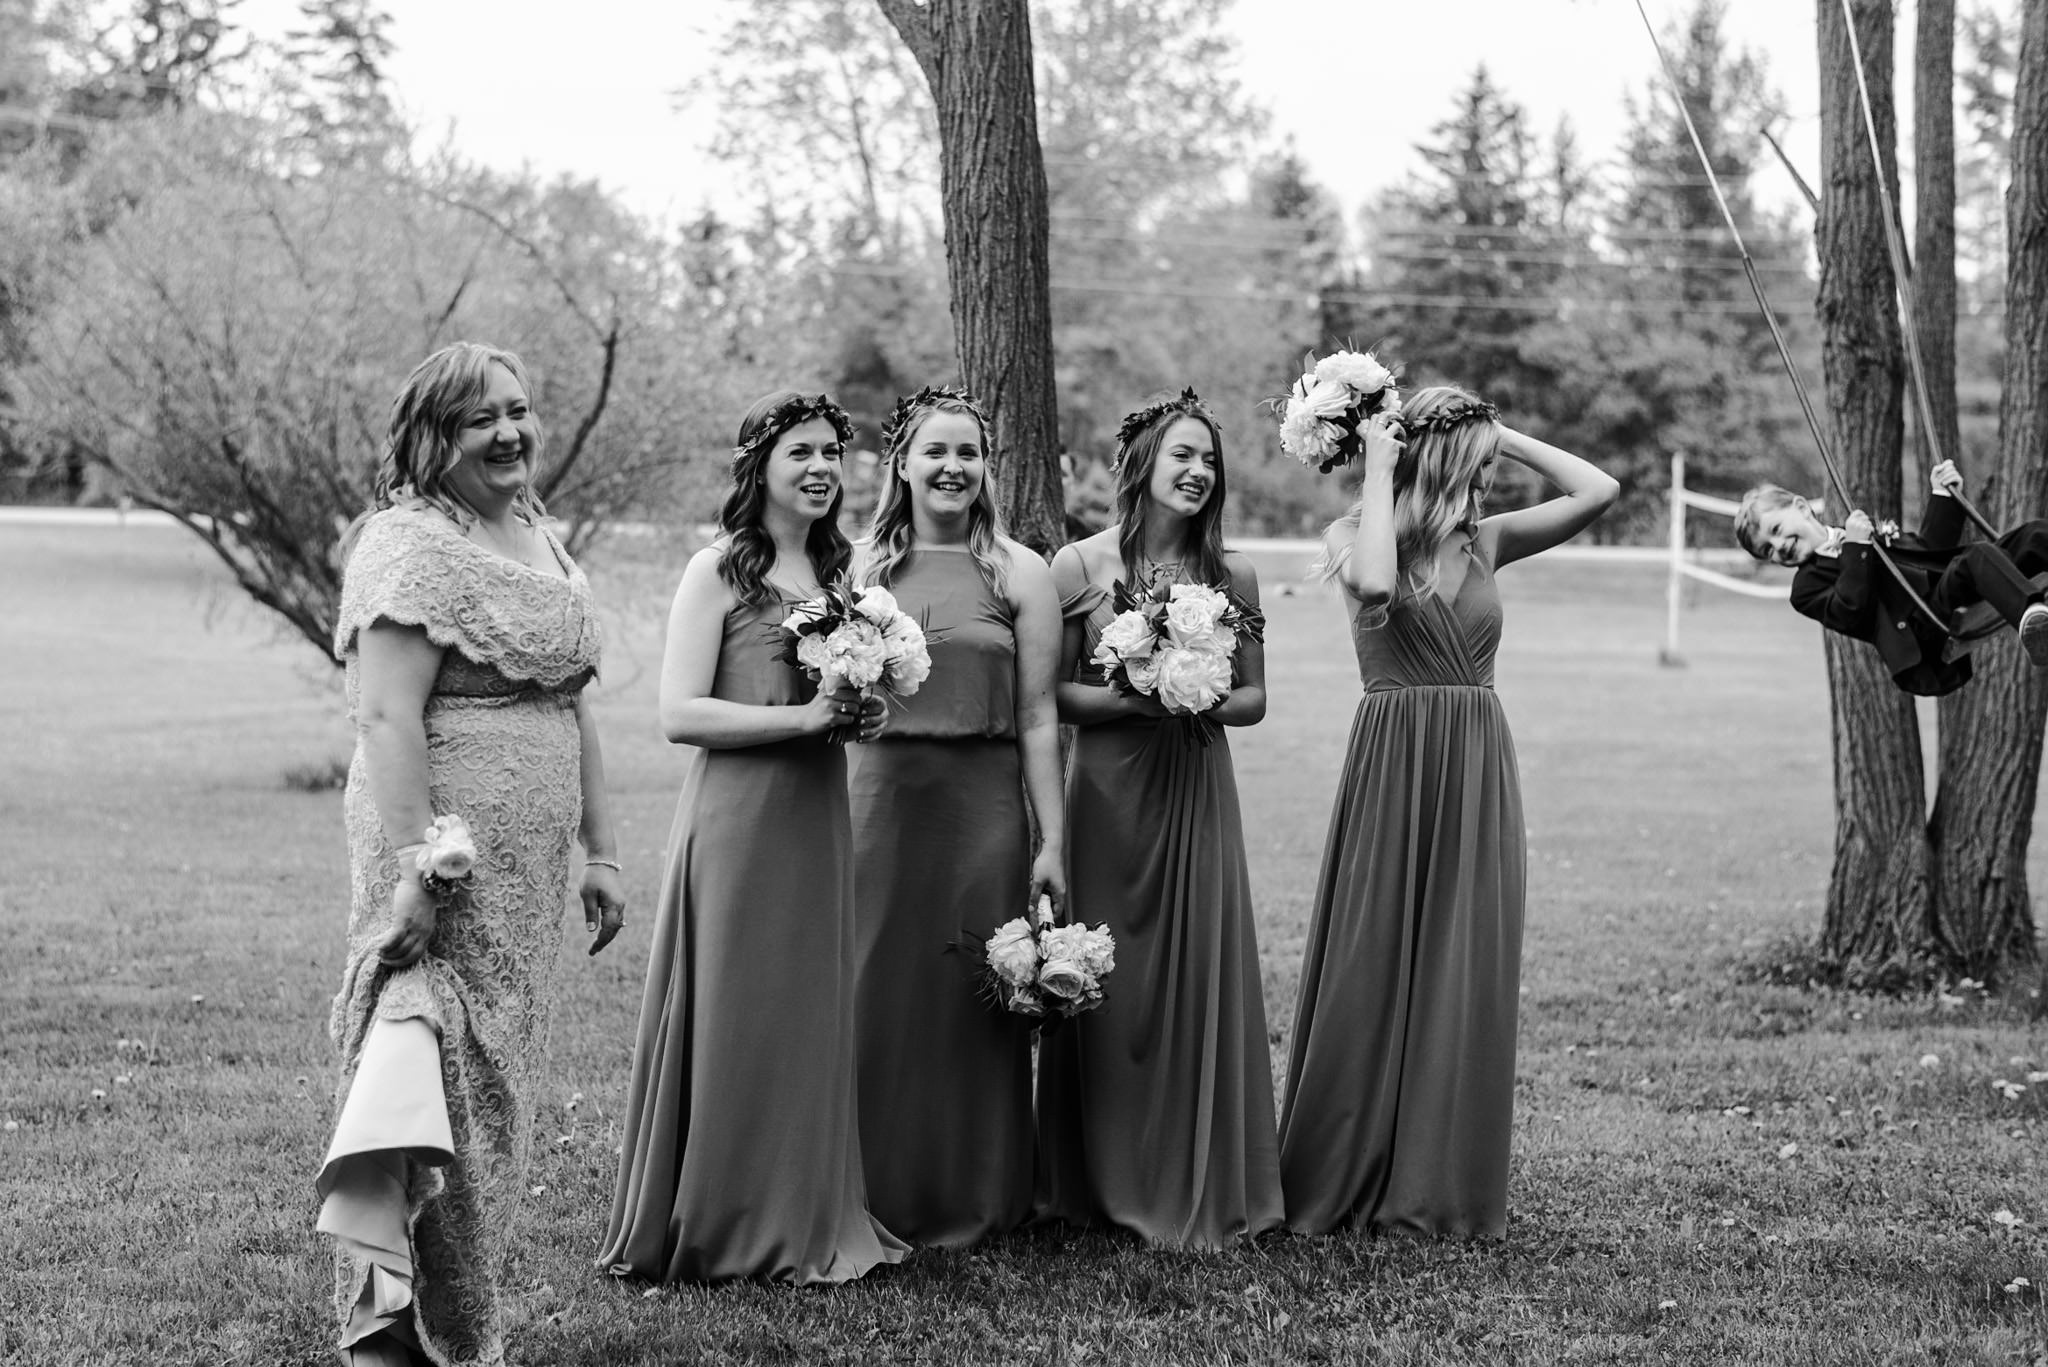 168-wedding-party-pale-blue-bridesmaids-outdoor-wedding-toronto.jpg